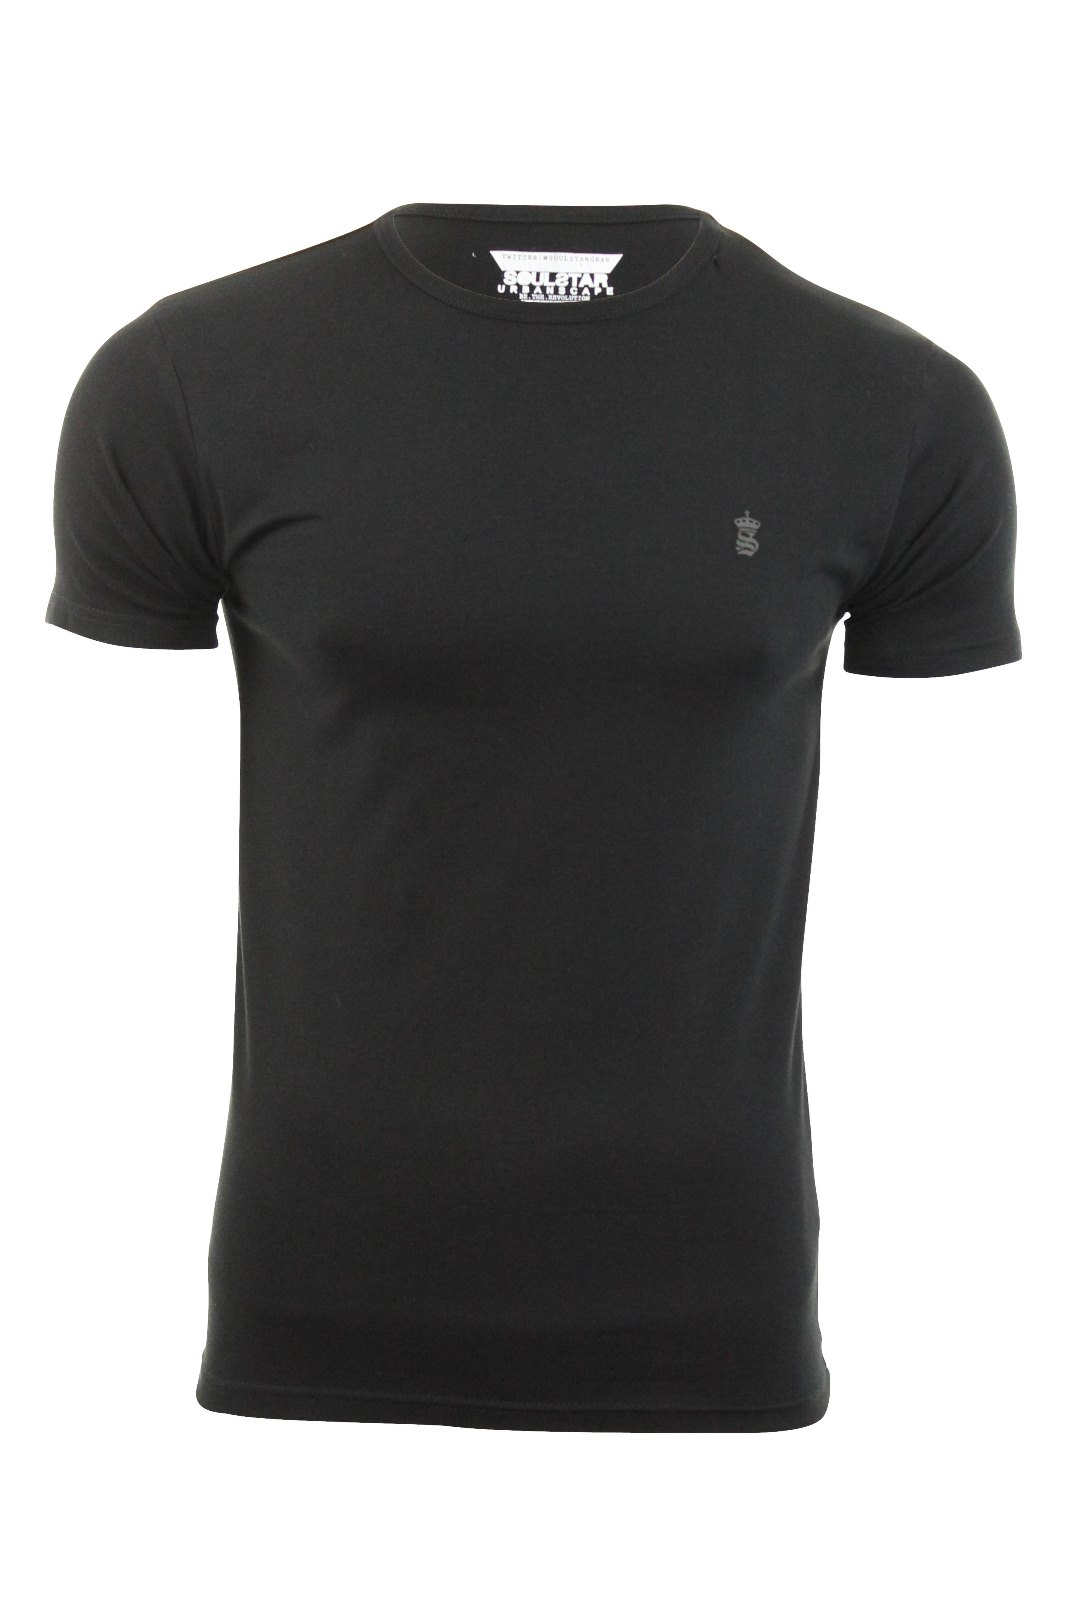 """V-neck tees tend to look best on men with a toned torso, and no chest/neck hair. Both of these """"requirements"""" would imply metro habits–working out and removing body hair. So, are v-neck shirts ."""